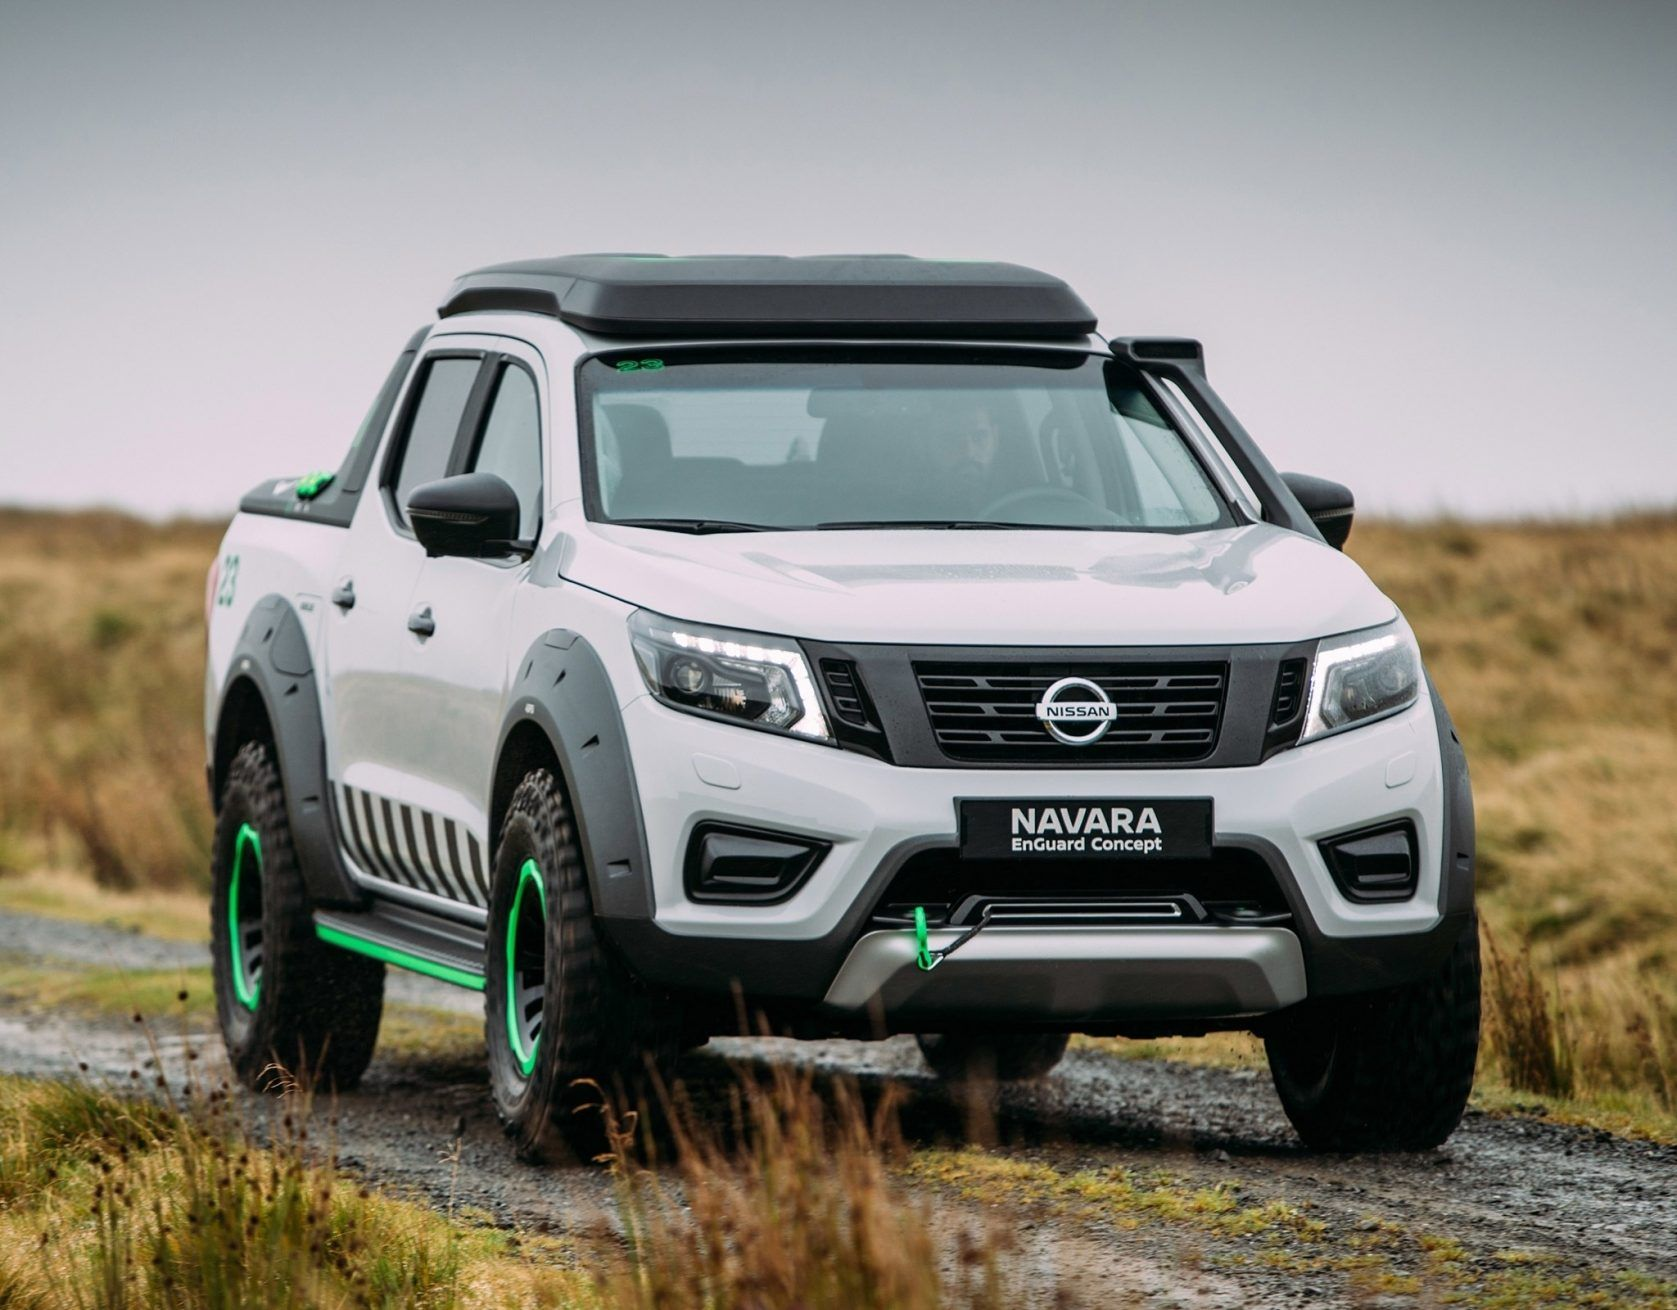 The 2020 Nissan Navara Is A Midsize Pickup That Provides